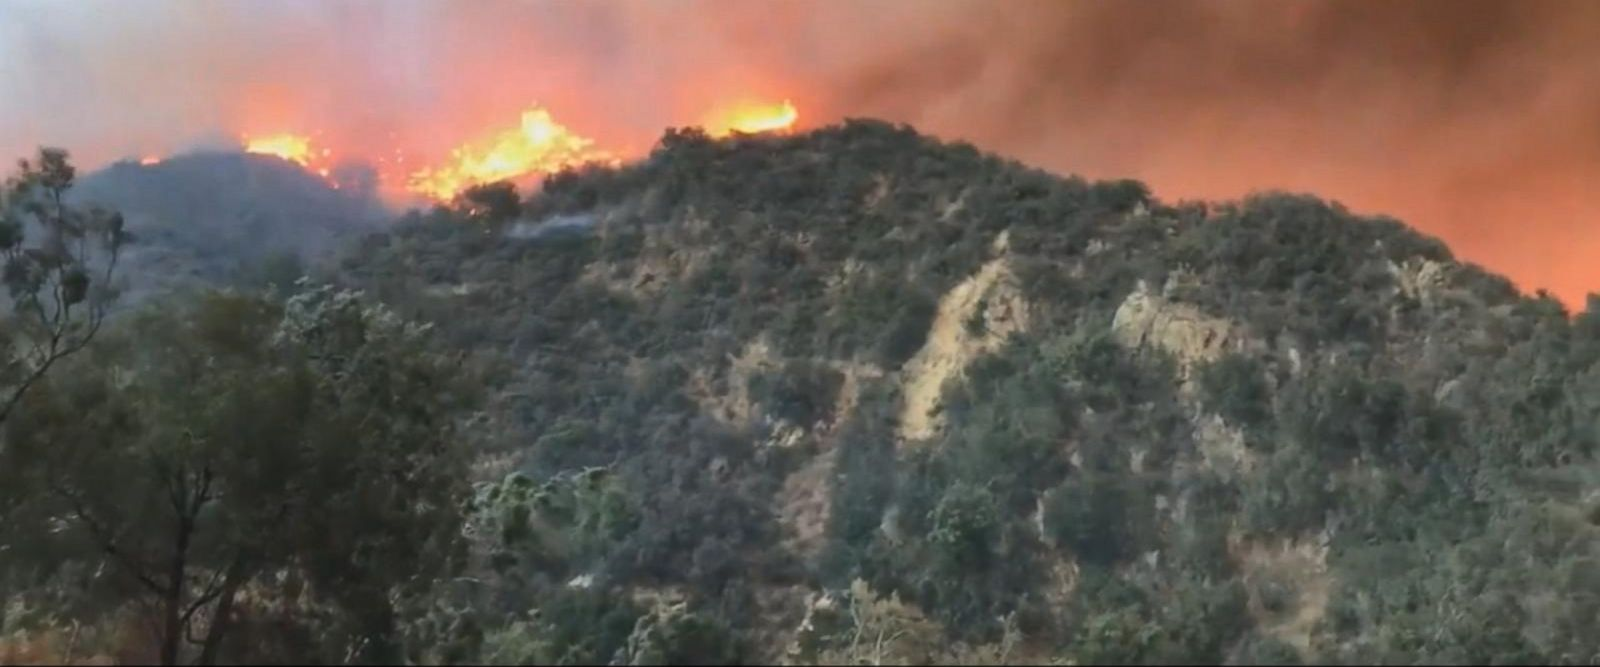 VIDEO: California's largest wildfire continuing to spread, forcing evacuations